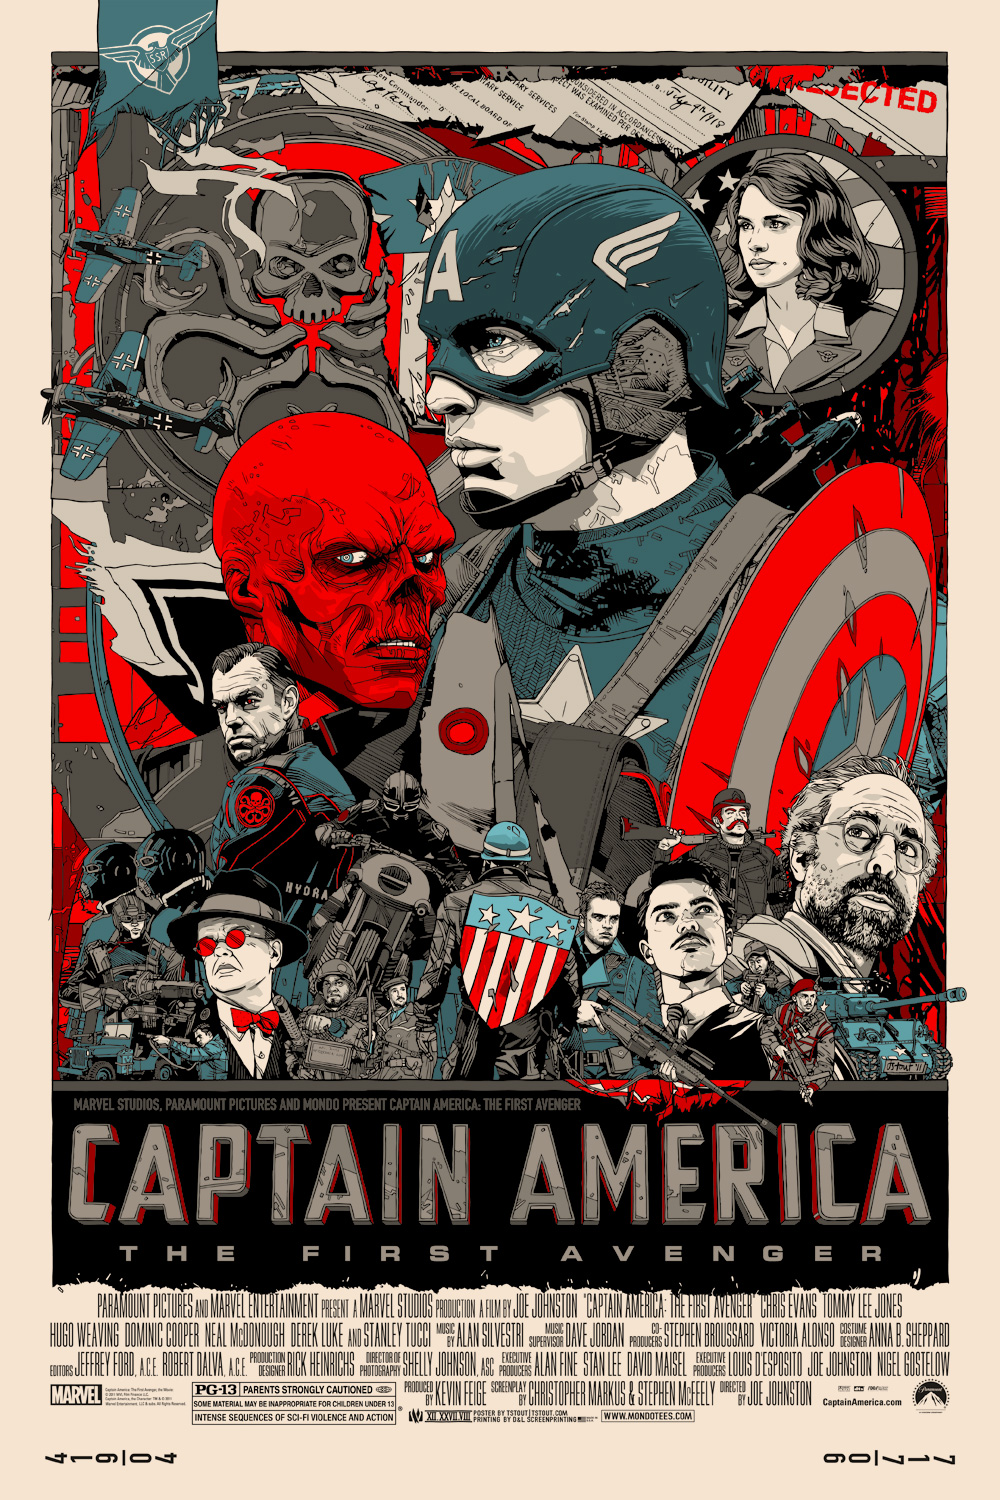 http://collider.com/wp-content/uploads/captain-america-the-first-avenger-mondo-poster-4.jpg